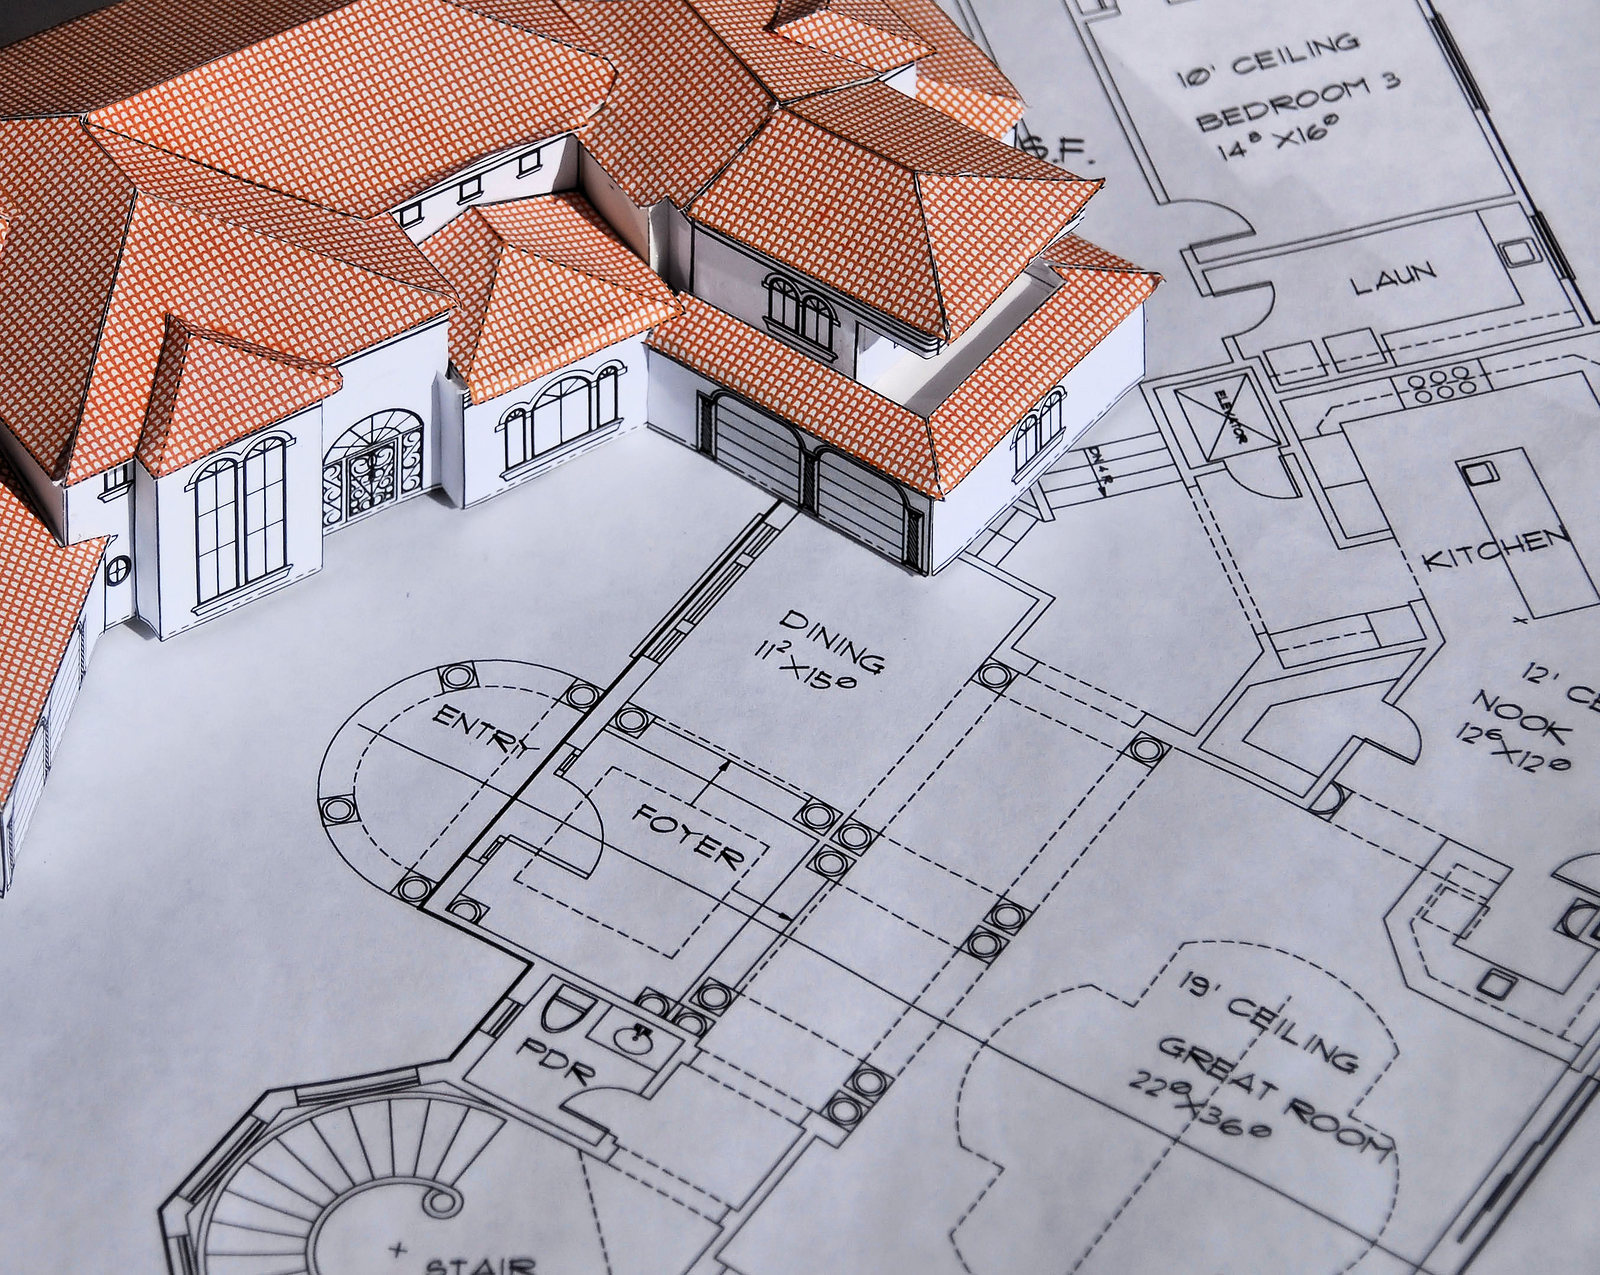 architectural engineering blueprints. Services_1 News1 Architectural Engineering Blueprints